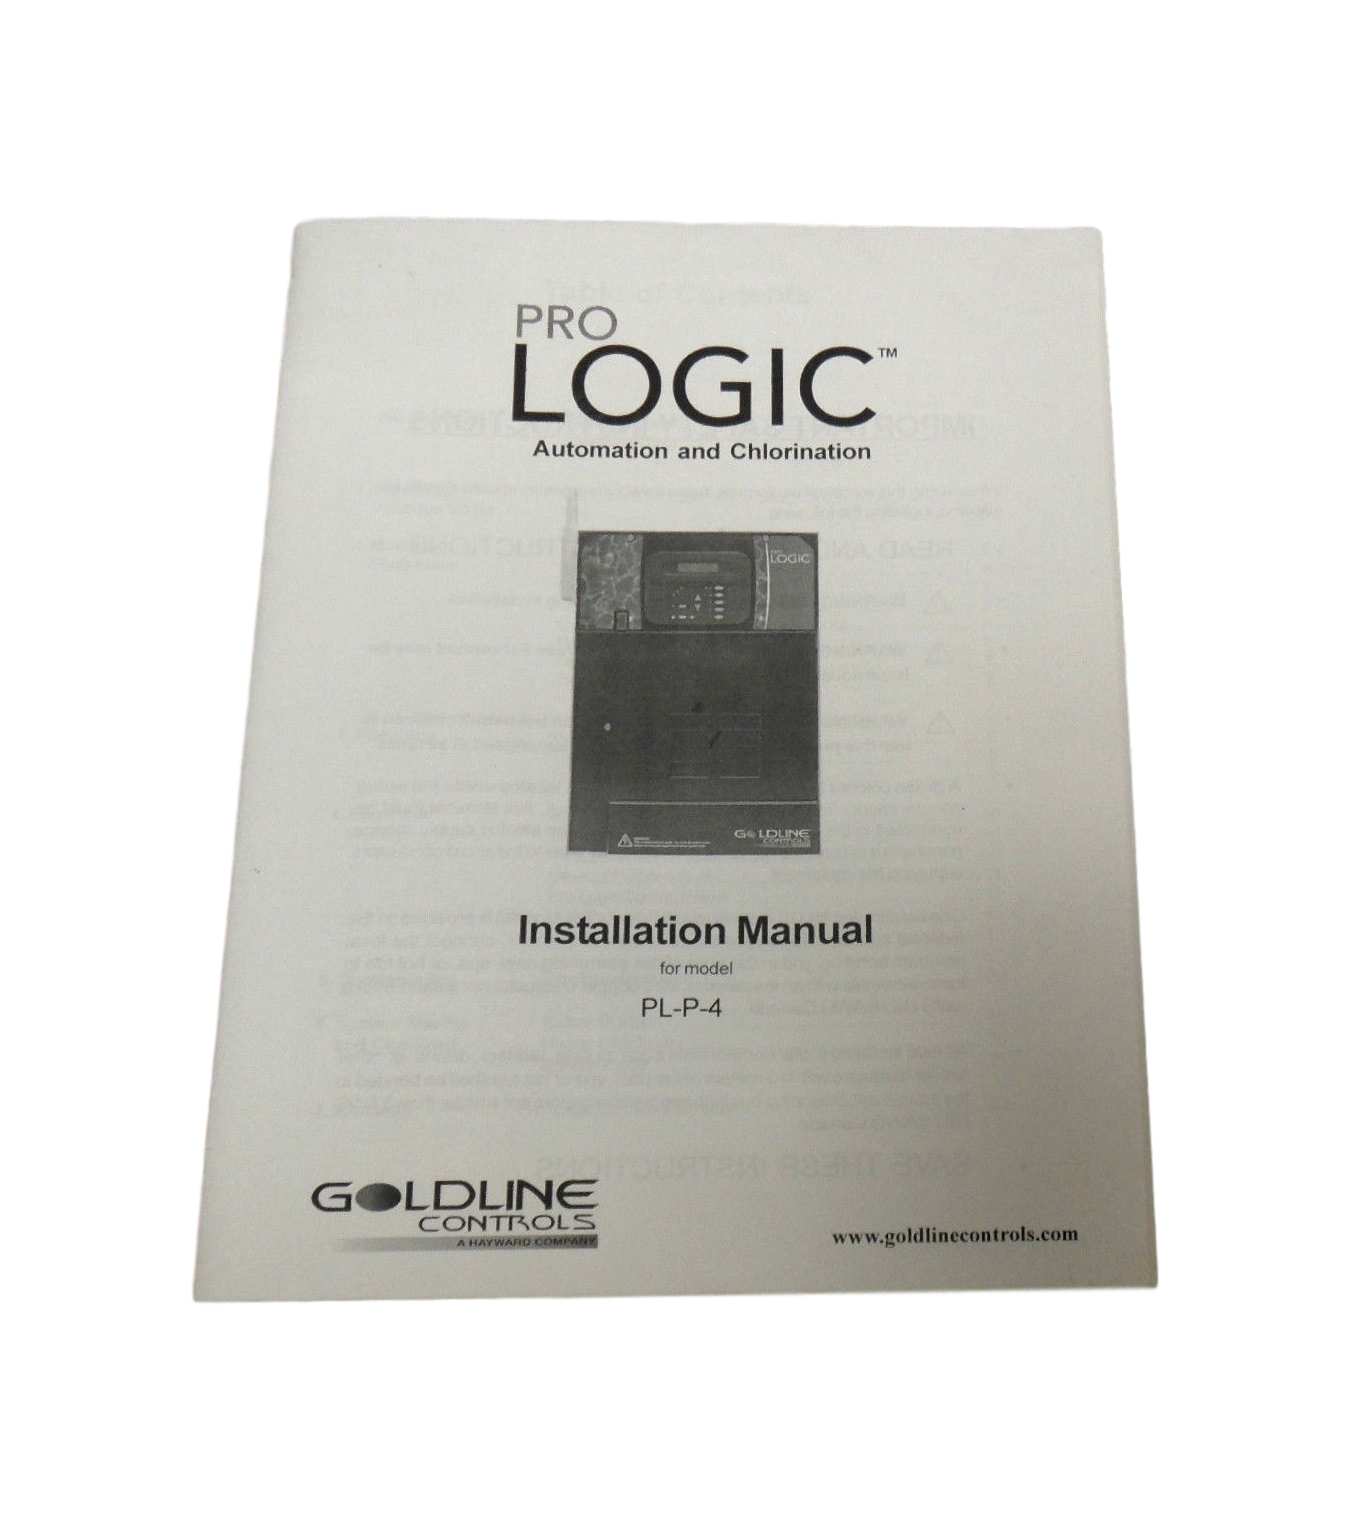 Hayward Pro Logic Automation Chlorination Installation Manual Pl4 Aqua Rite Wiring Diagram Responsive Image